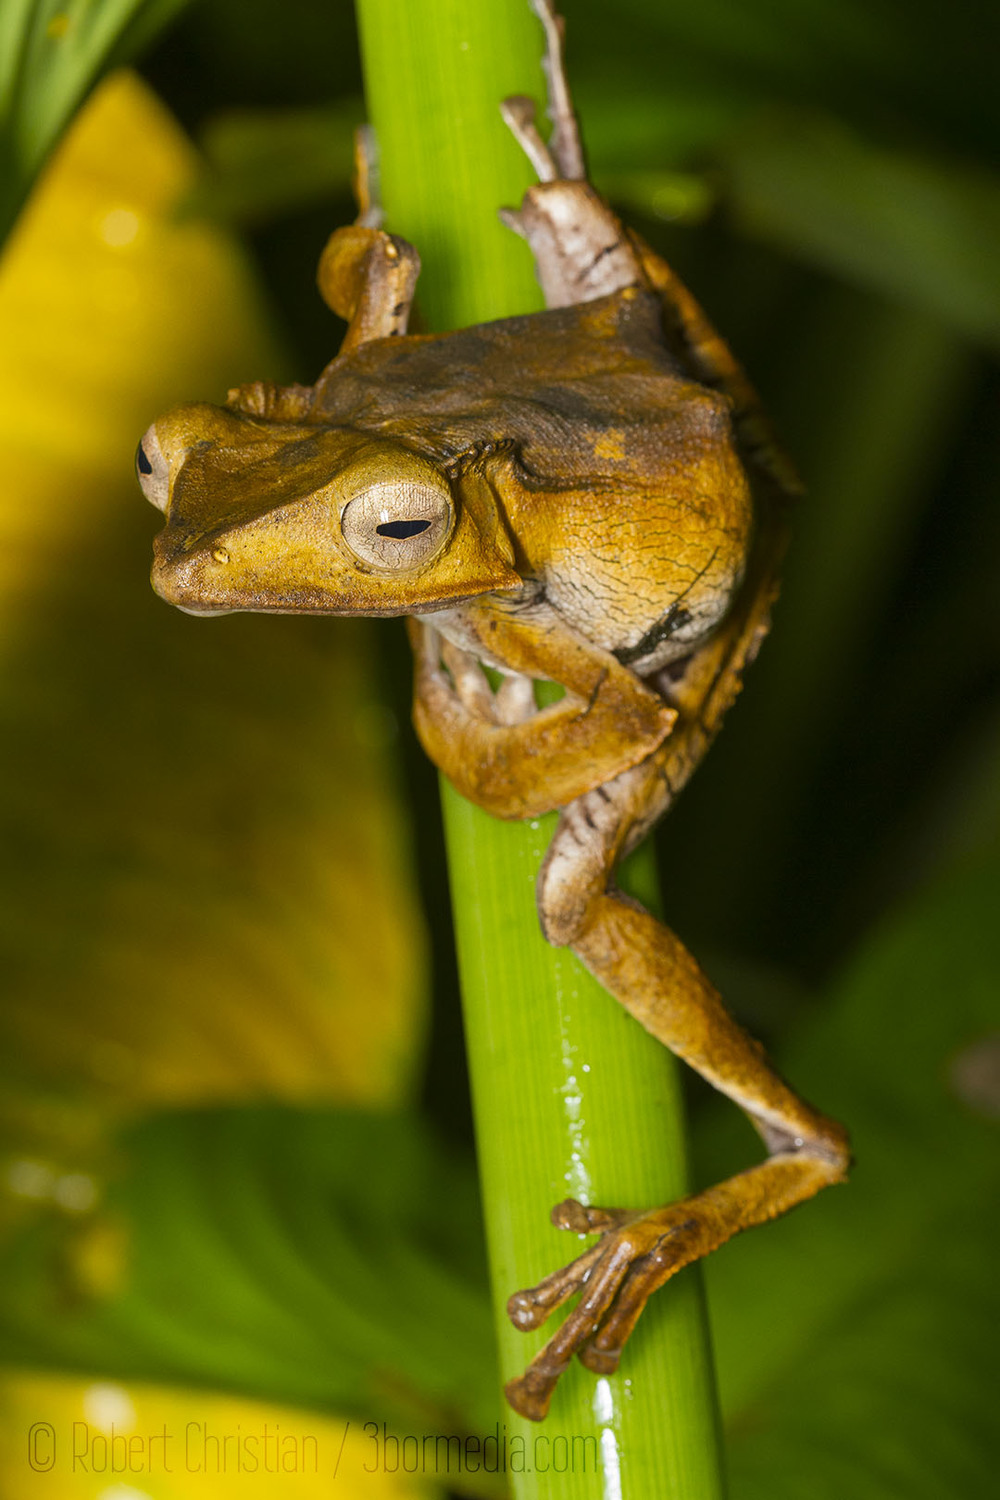 File-Eared Tree Frog.